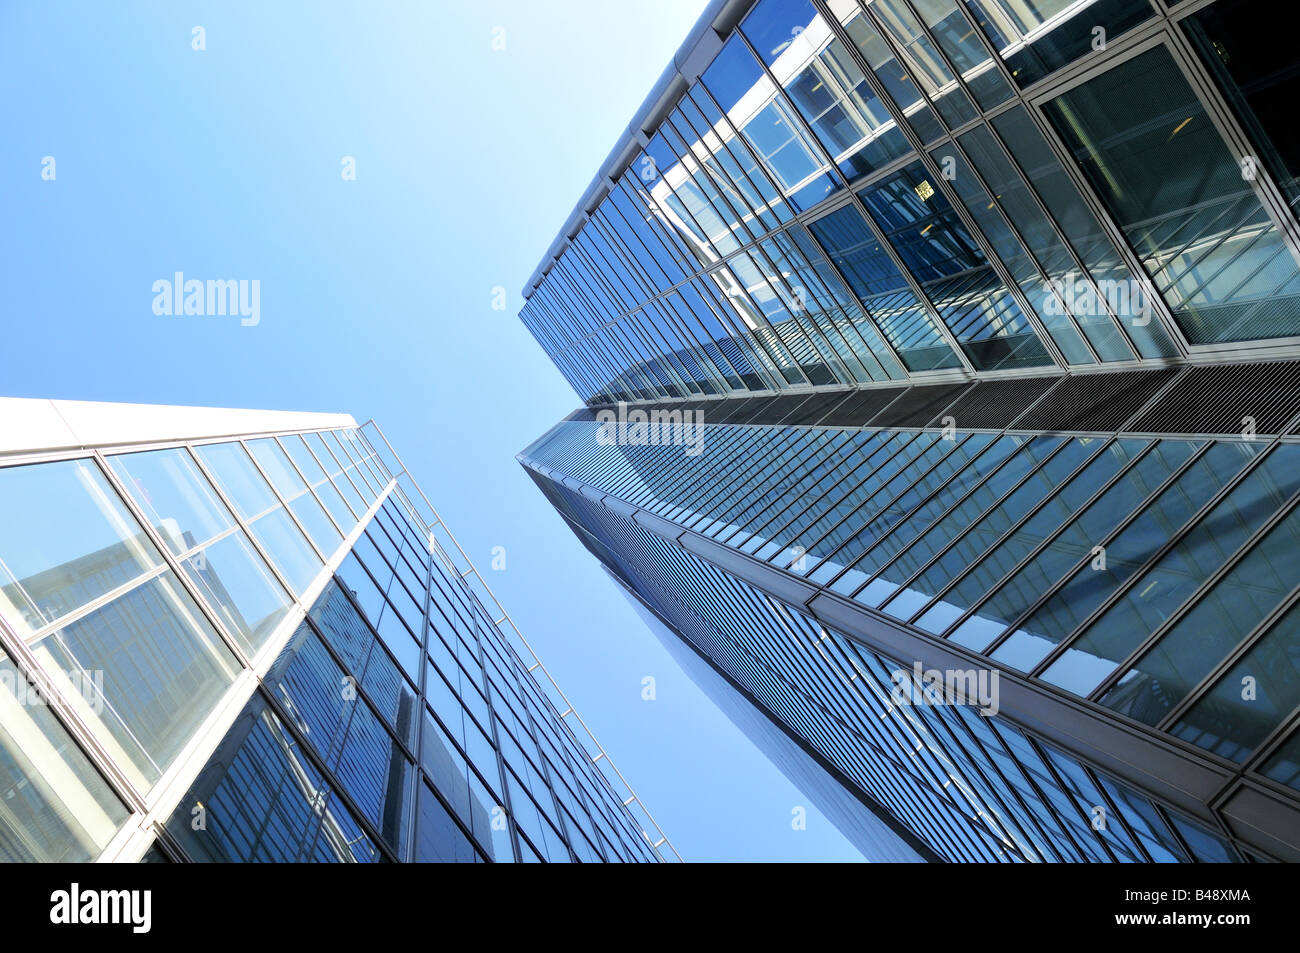 Modern Architecture Europe office buildings - modern architecture in city of london with blue